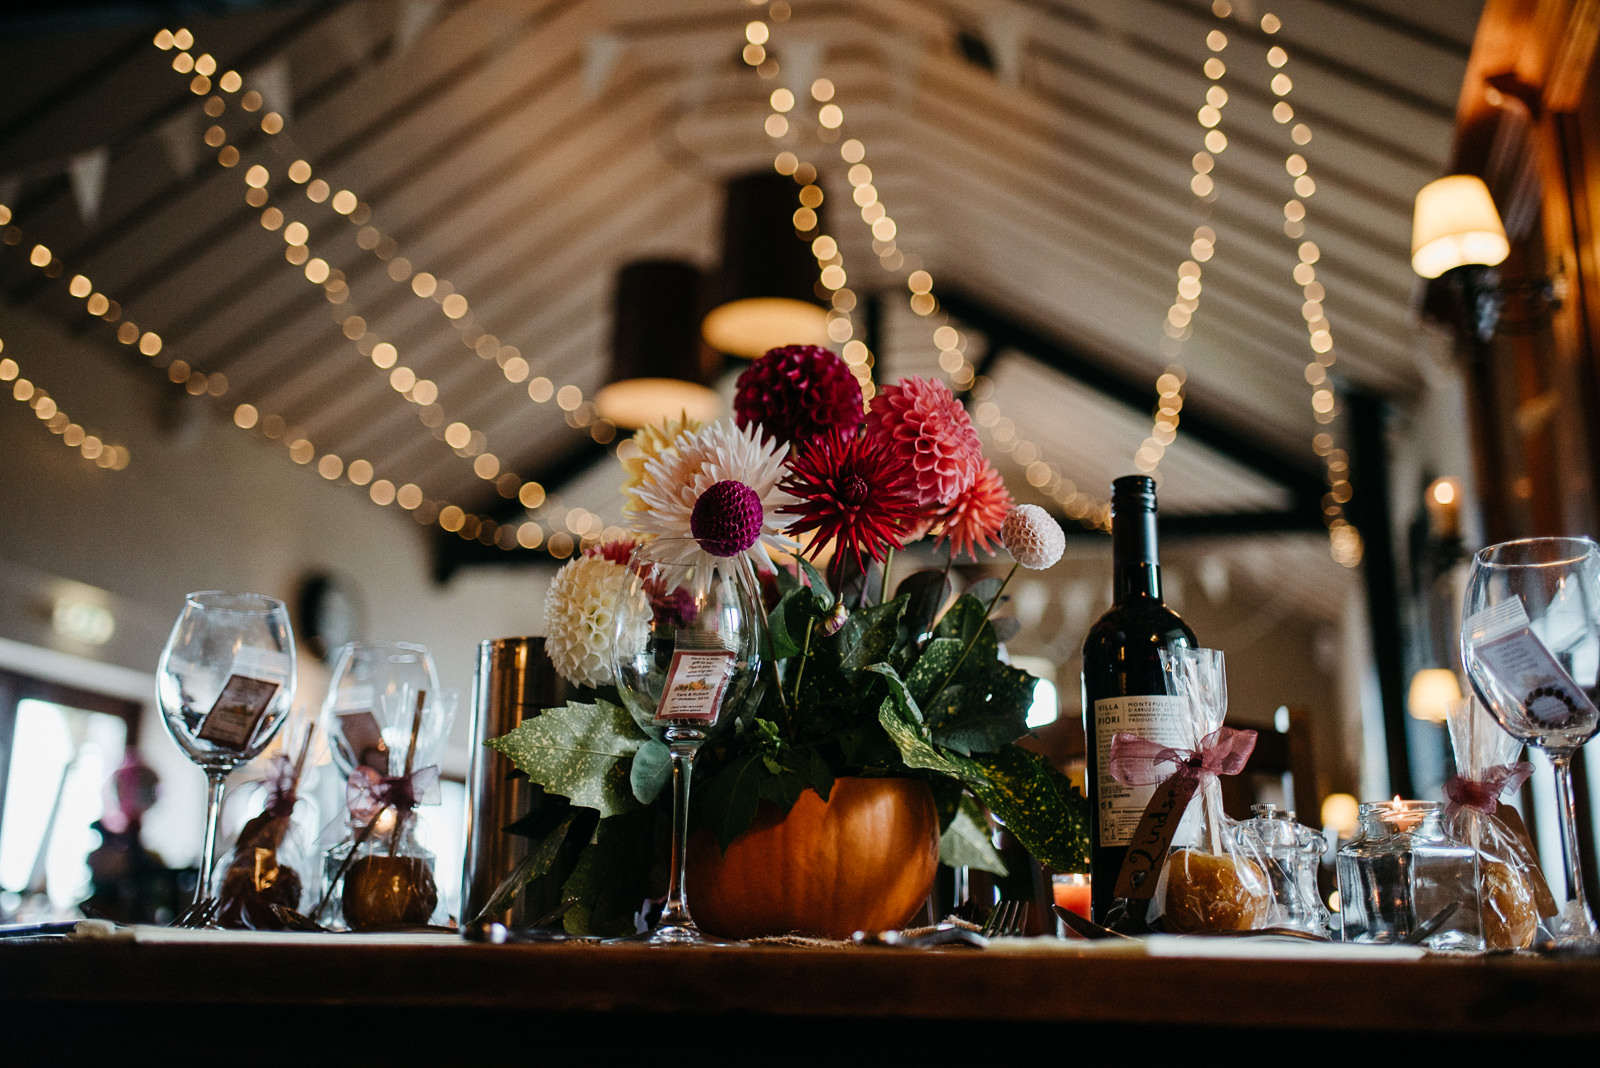 Planning your wedding day 8 tips on locations timings firstlooks